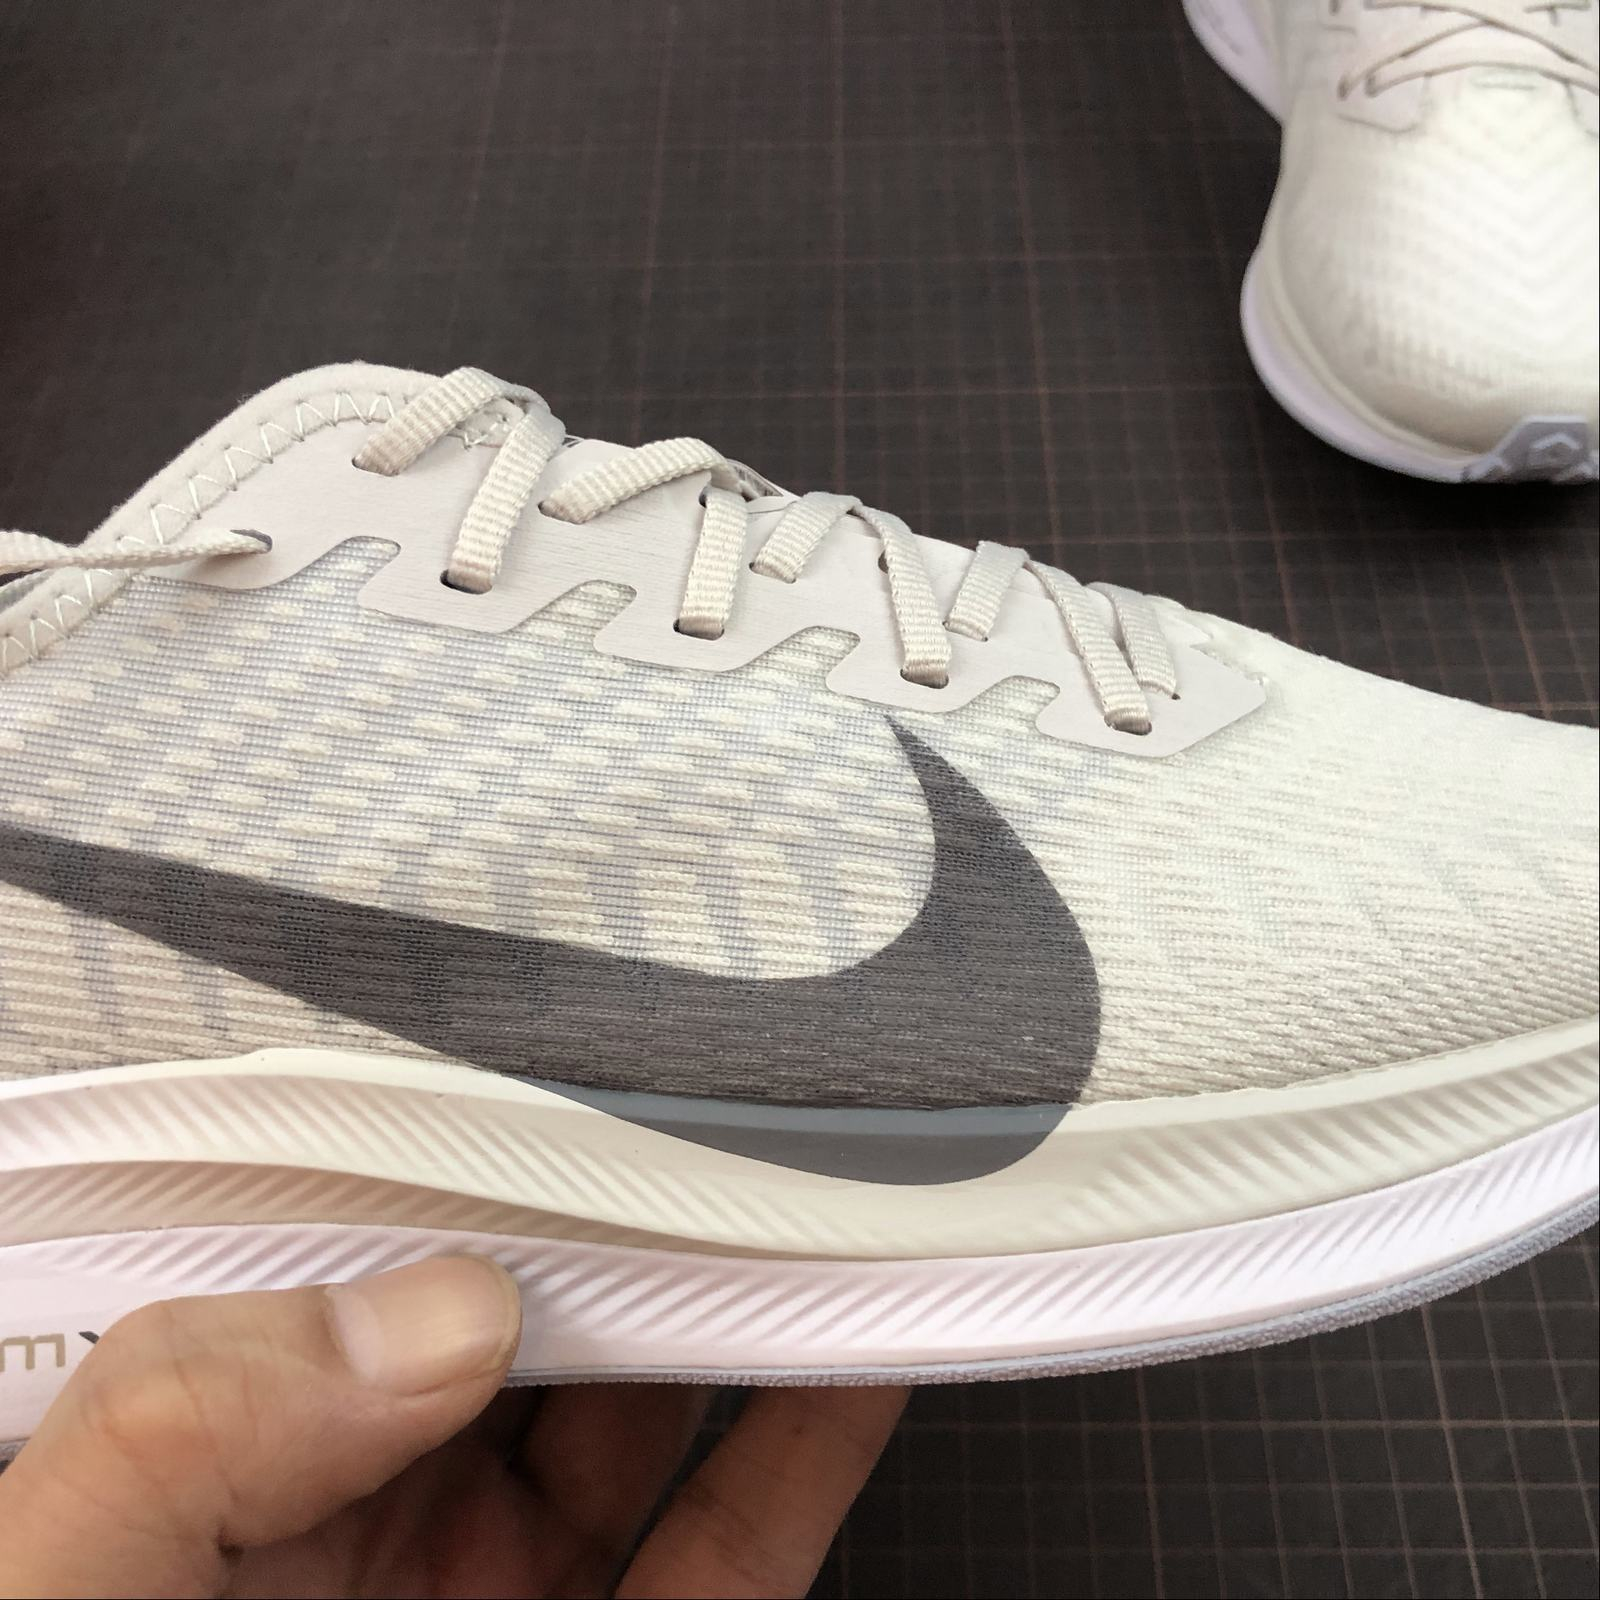 Мужские кроссовки Nike Zoom Pegasus Turbo 2 Men White,Grey - фото №8